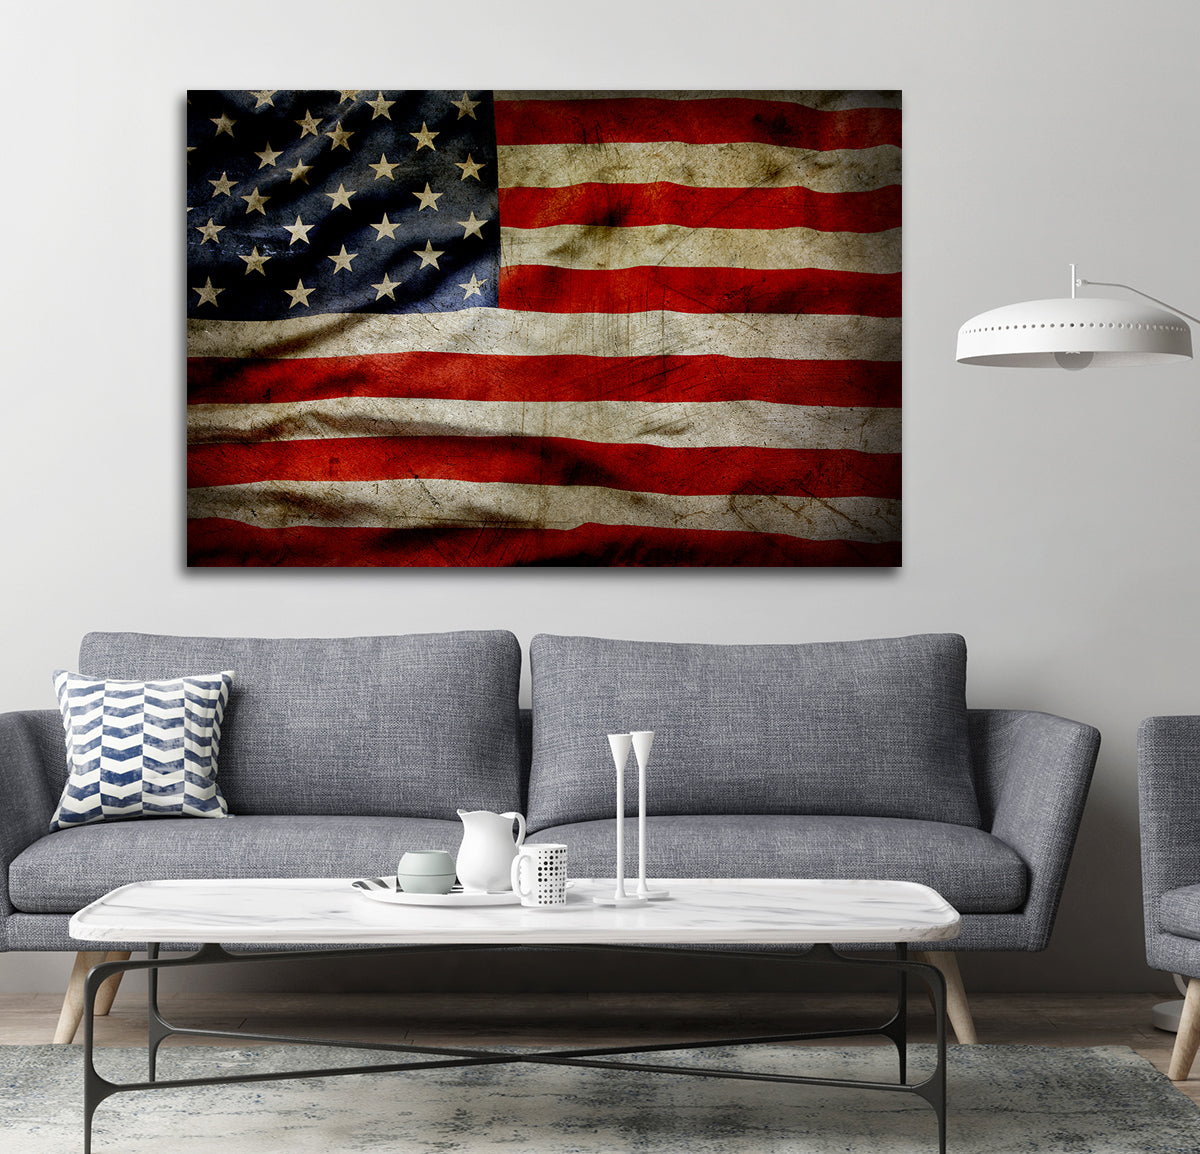 ... American Flag Canvas Wall Art Grunge Style American Flag   Royal Crown  Pro